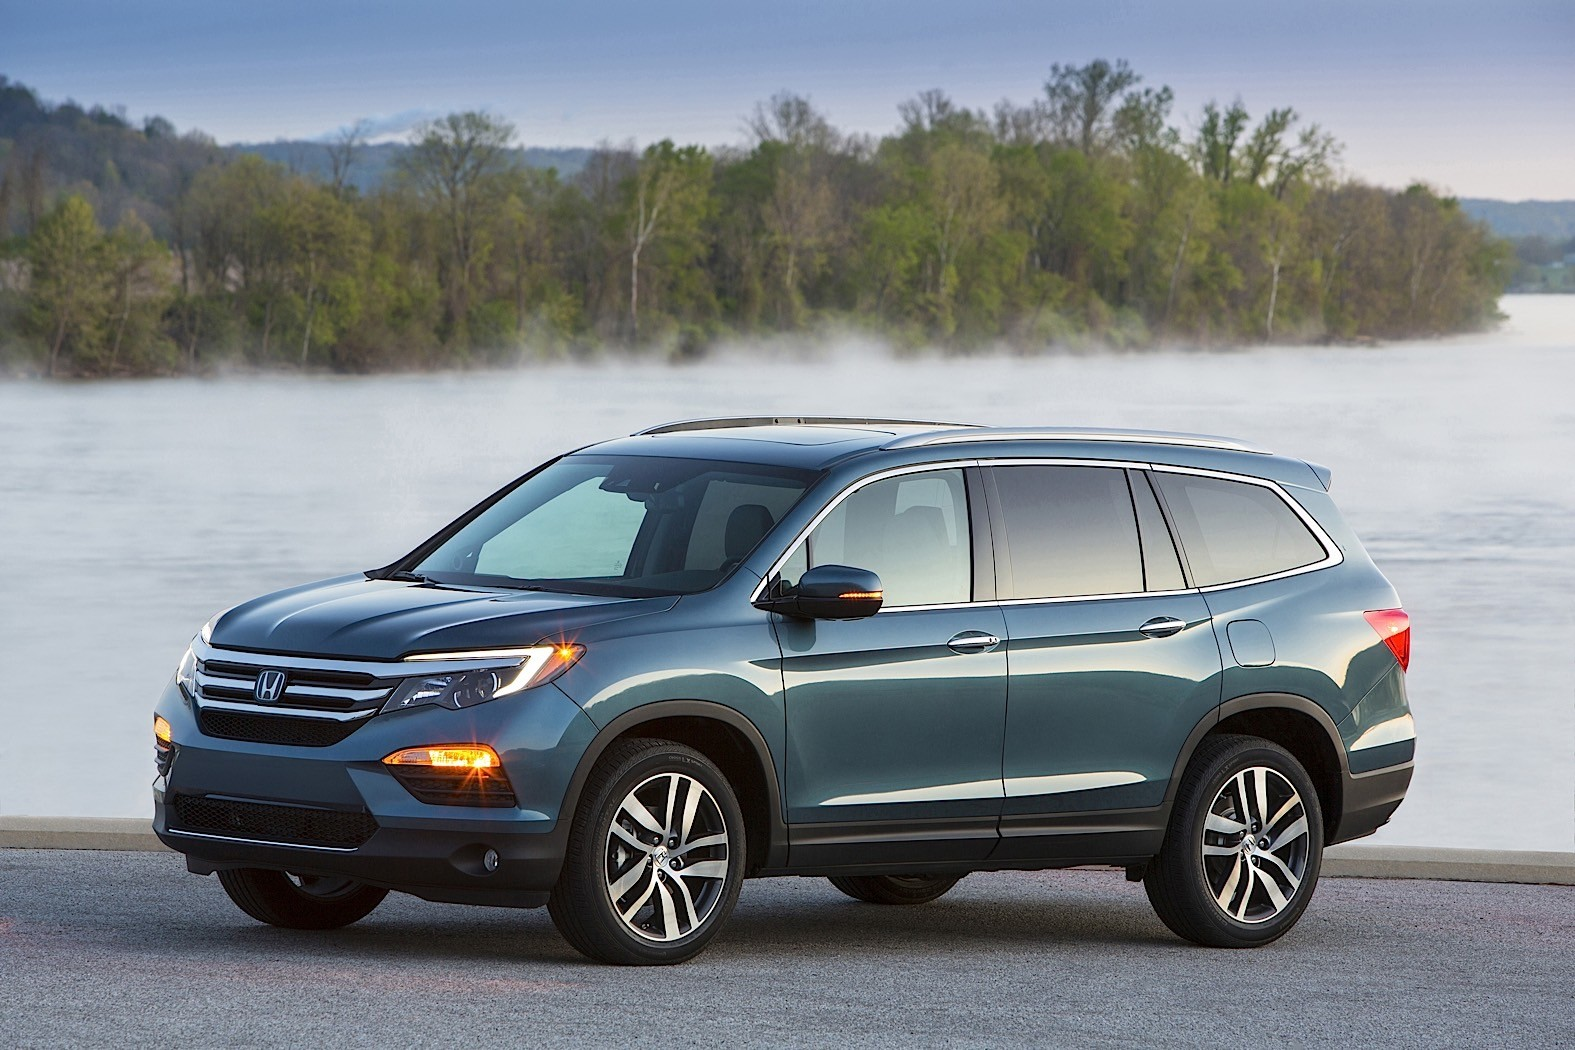 2016 honda pilot review autoevolution for Honda pilot images